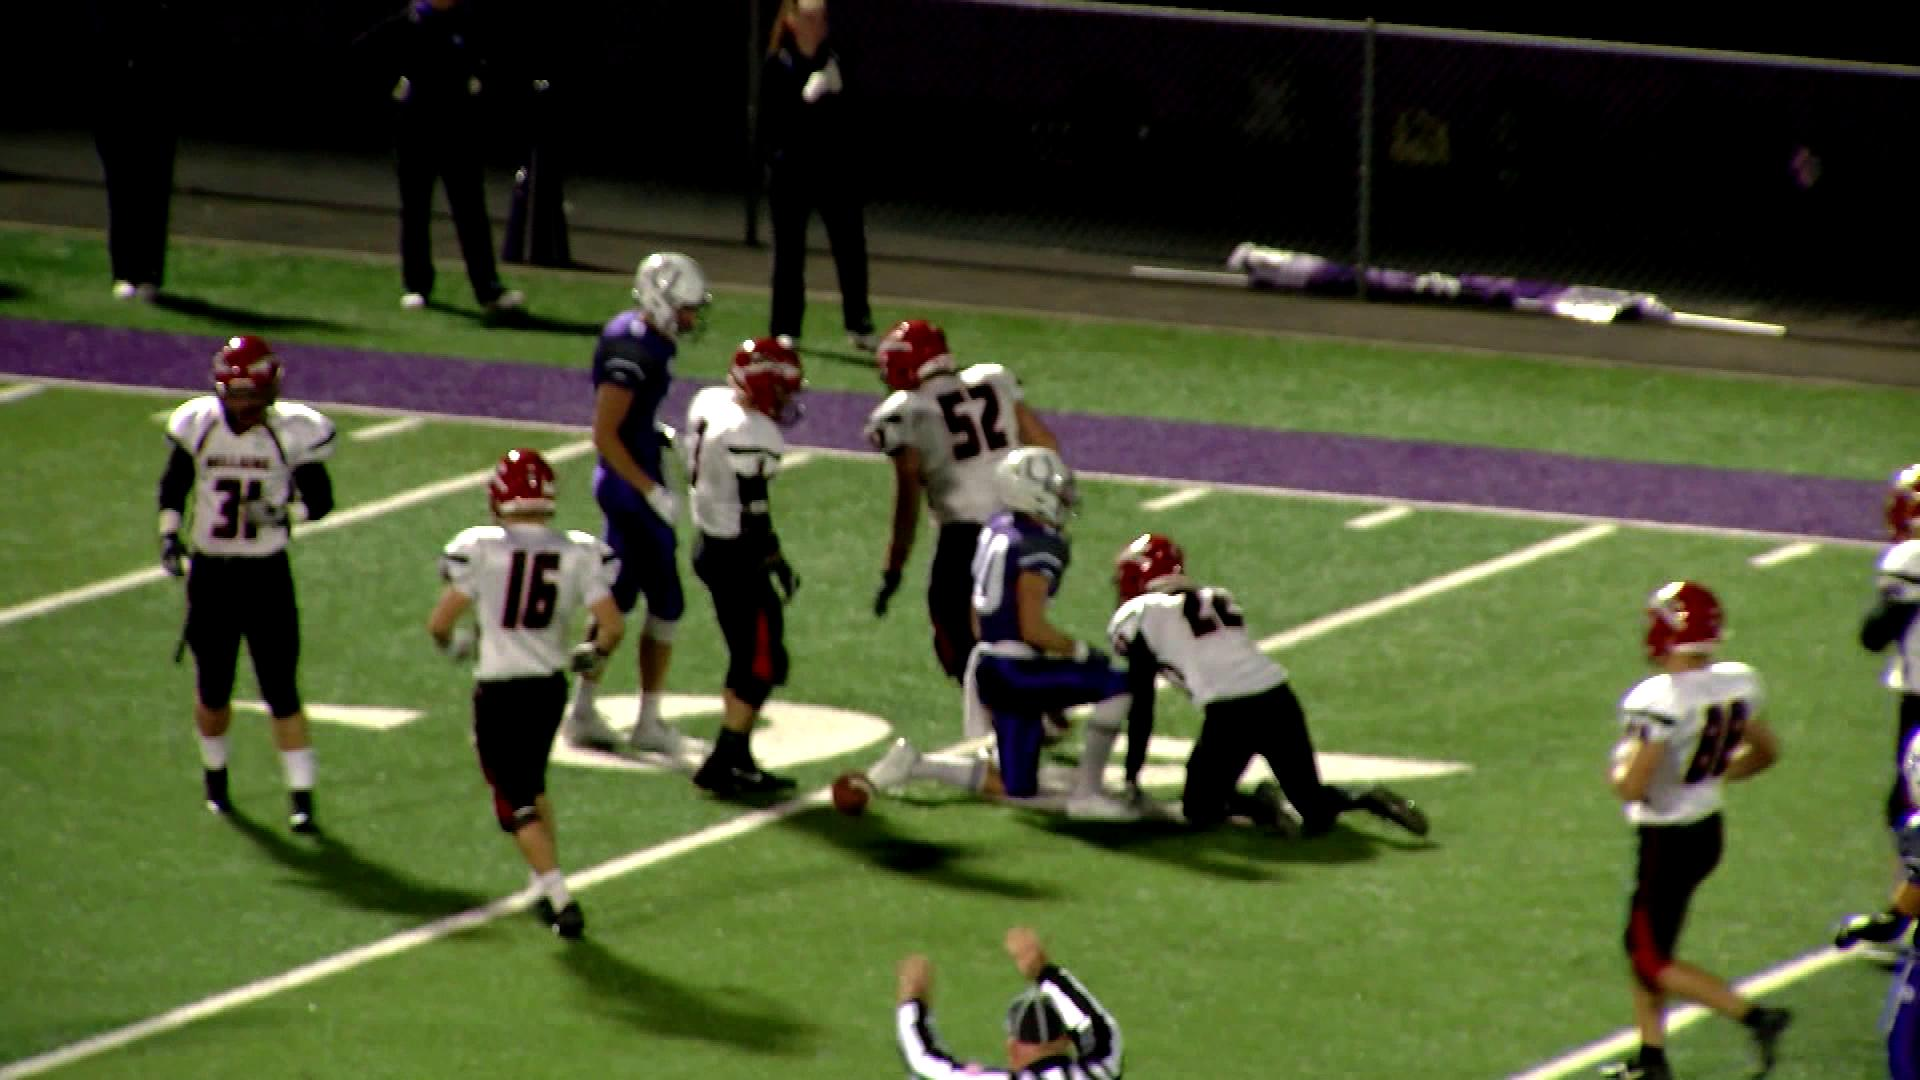 11.3.18 Highlights: Bellaire at Martins Ferry